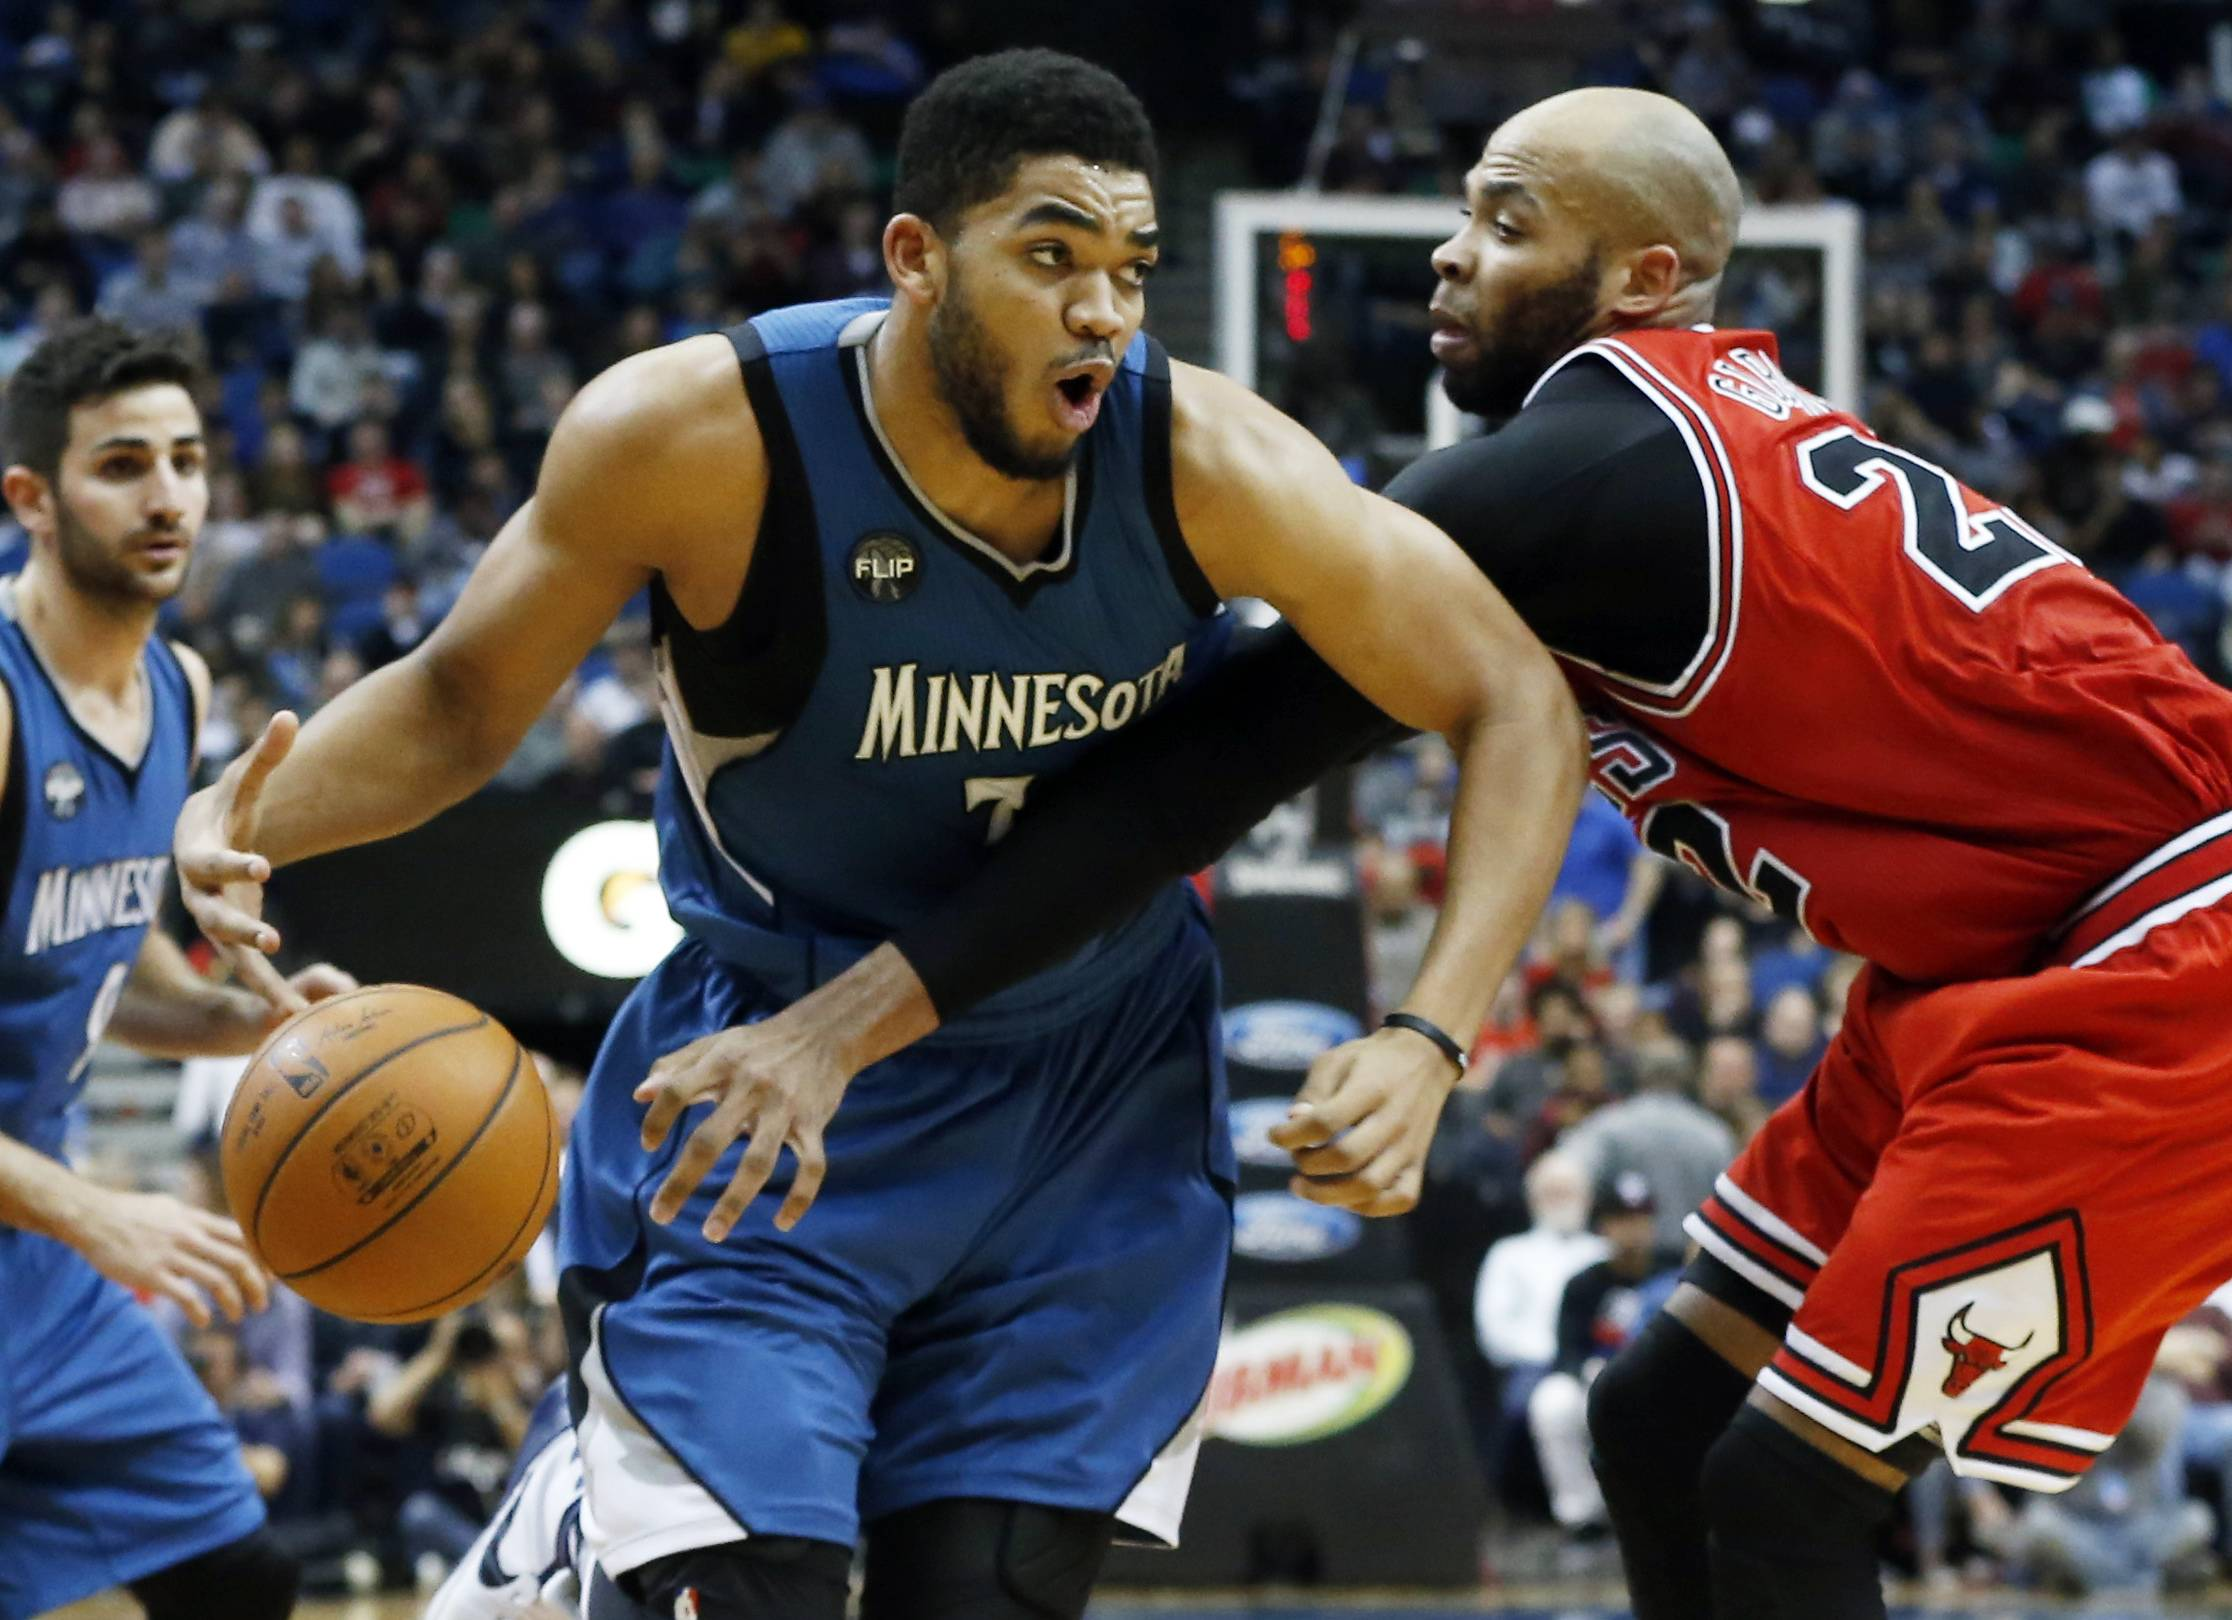 Minnesota Timberwolves' Karl-Anthony Towns, left, drives on Chicago Bulls' Taj Gibson in the second half of an NBA basketball game, Saturday, Feb. 6, 2016, in Minneapolis. The Timberwolves won 112-105. (AP Photo/Jim Mone)